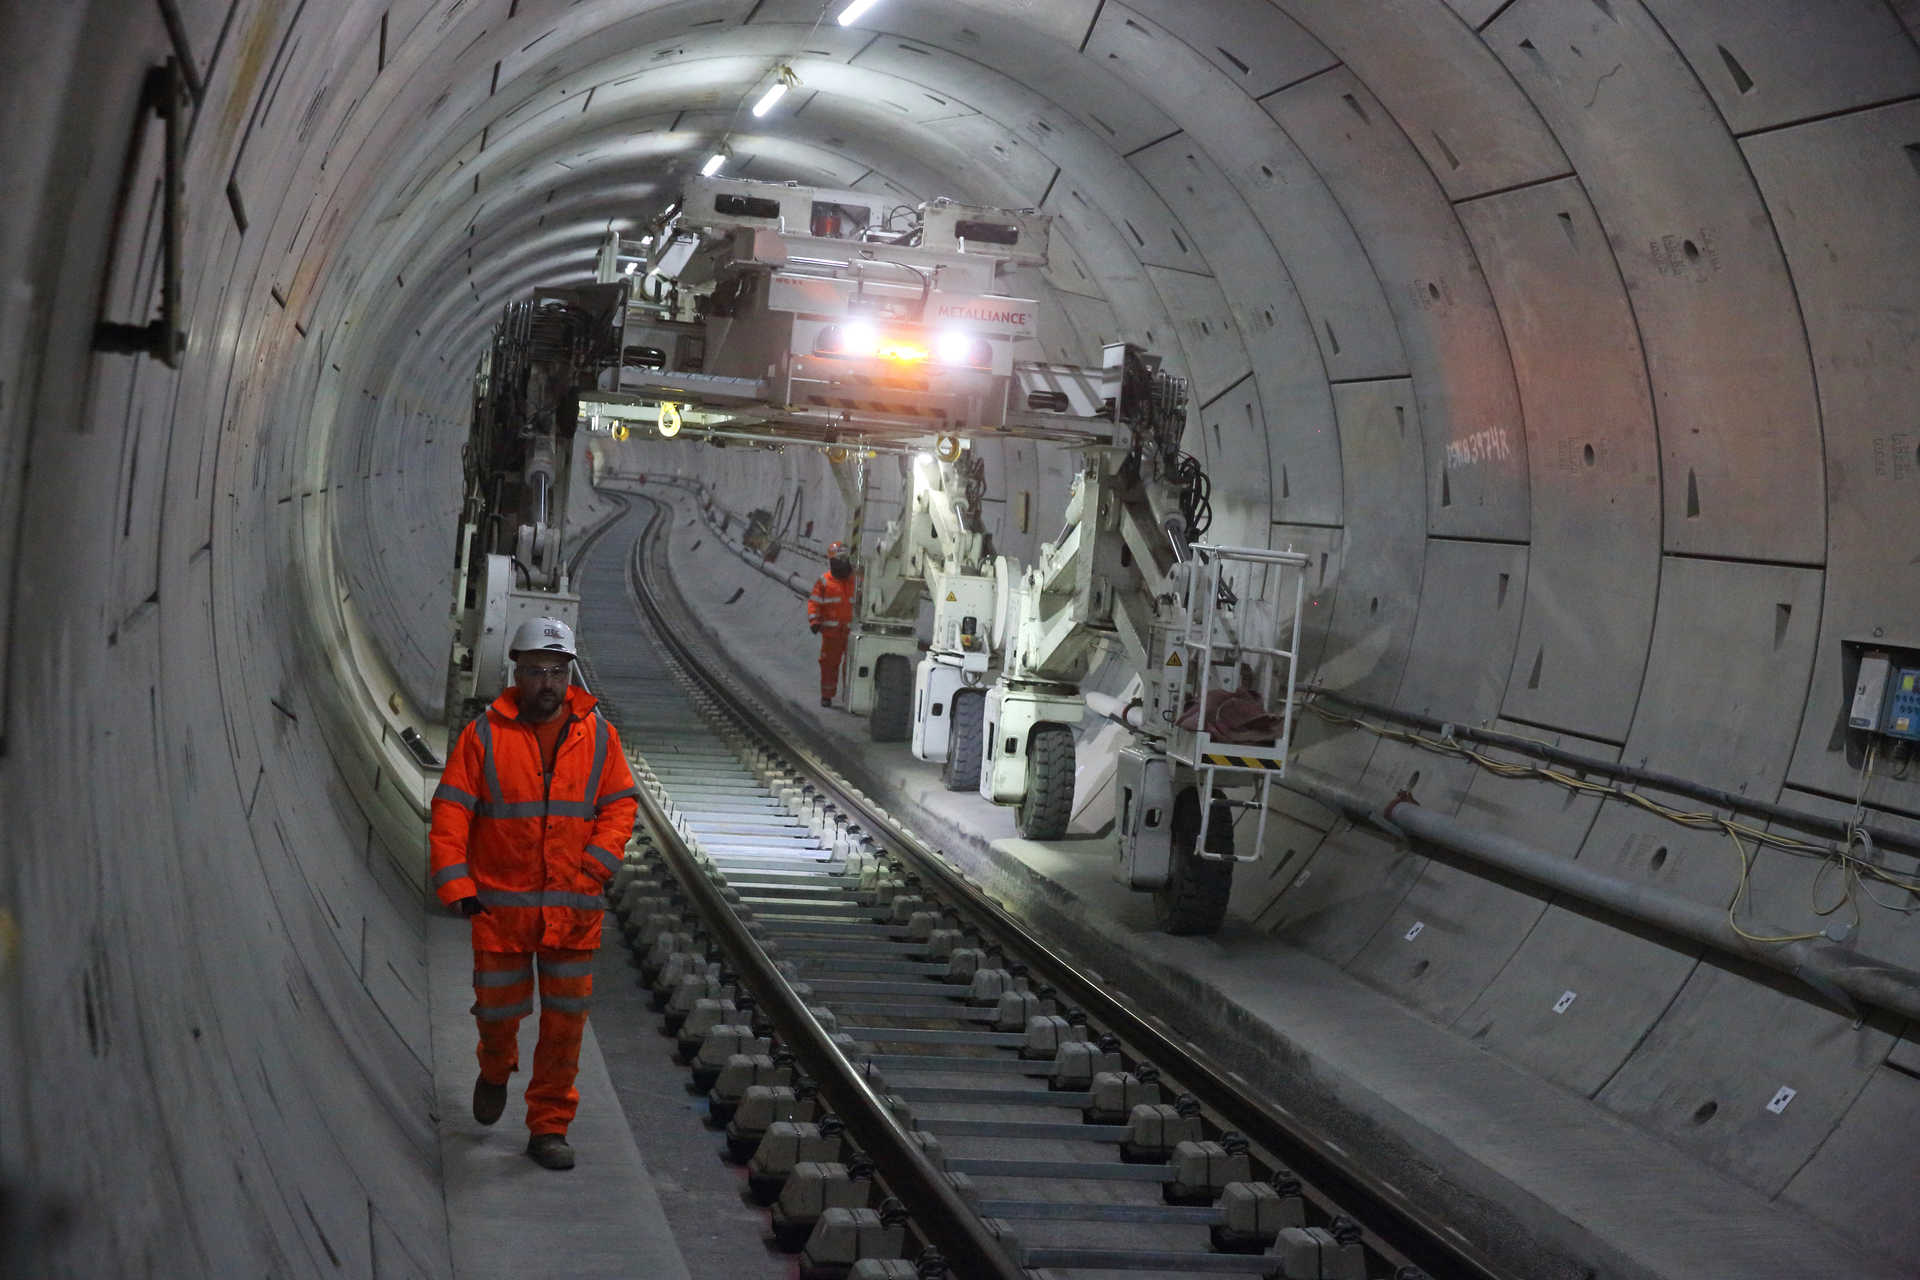 Crossrail documentary: The Fifteen Billion Pound Railway